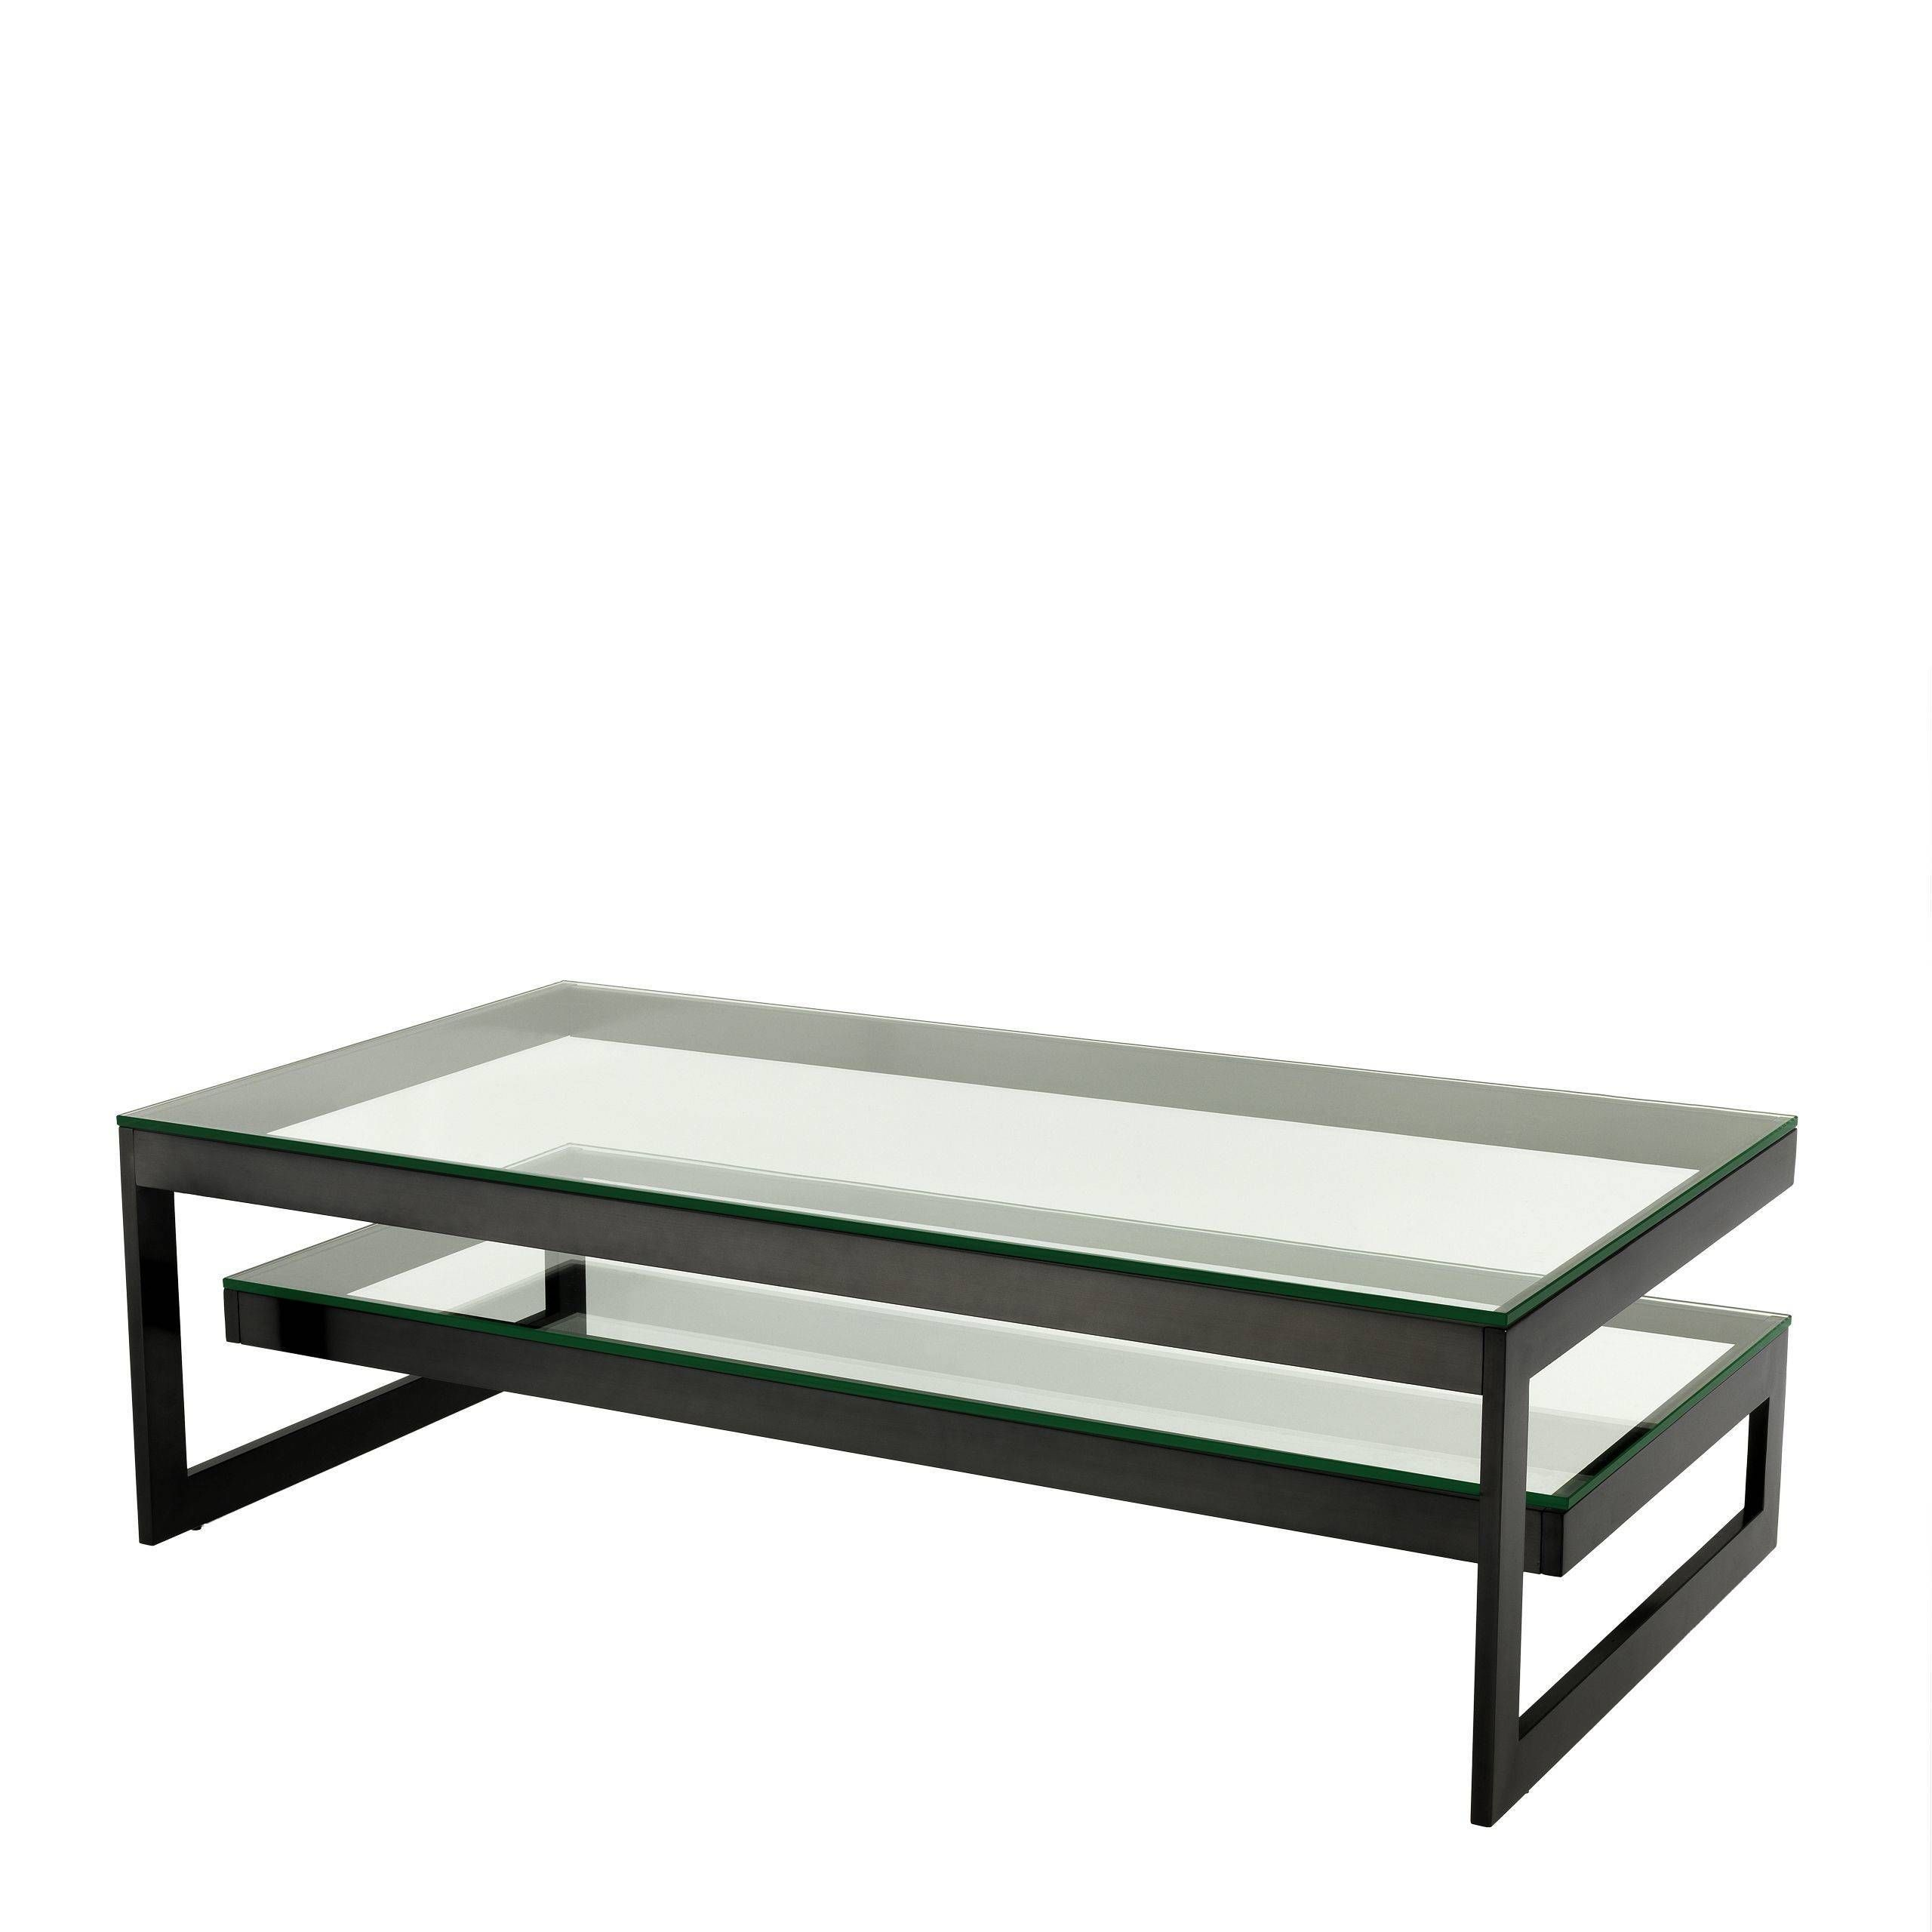 Spin Rotating Coffee Table Reviews Cb2 In 2021 Coffee Table Wood Coffee Table Design Coffee Table [ 1050 x 1050 Pixel ]